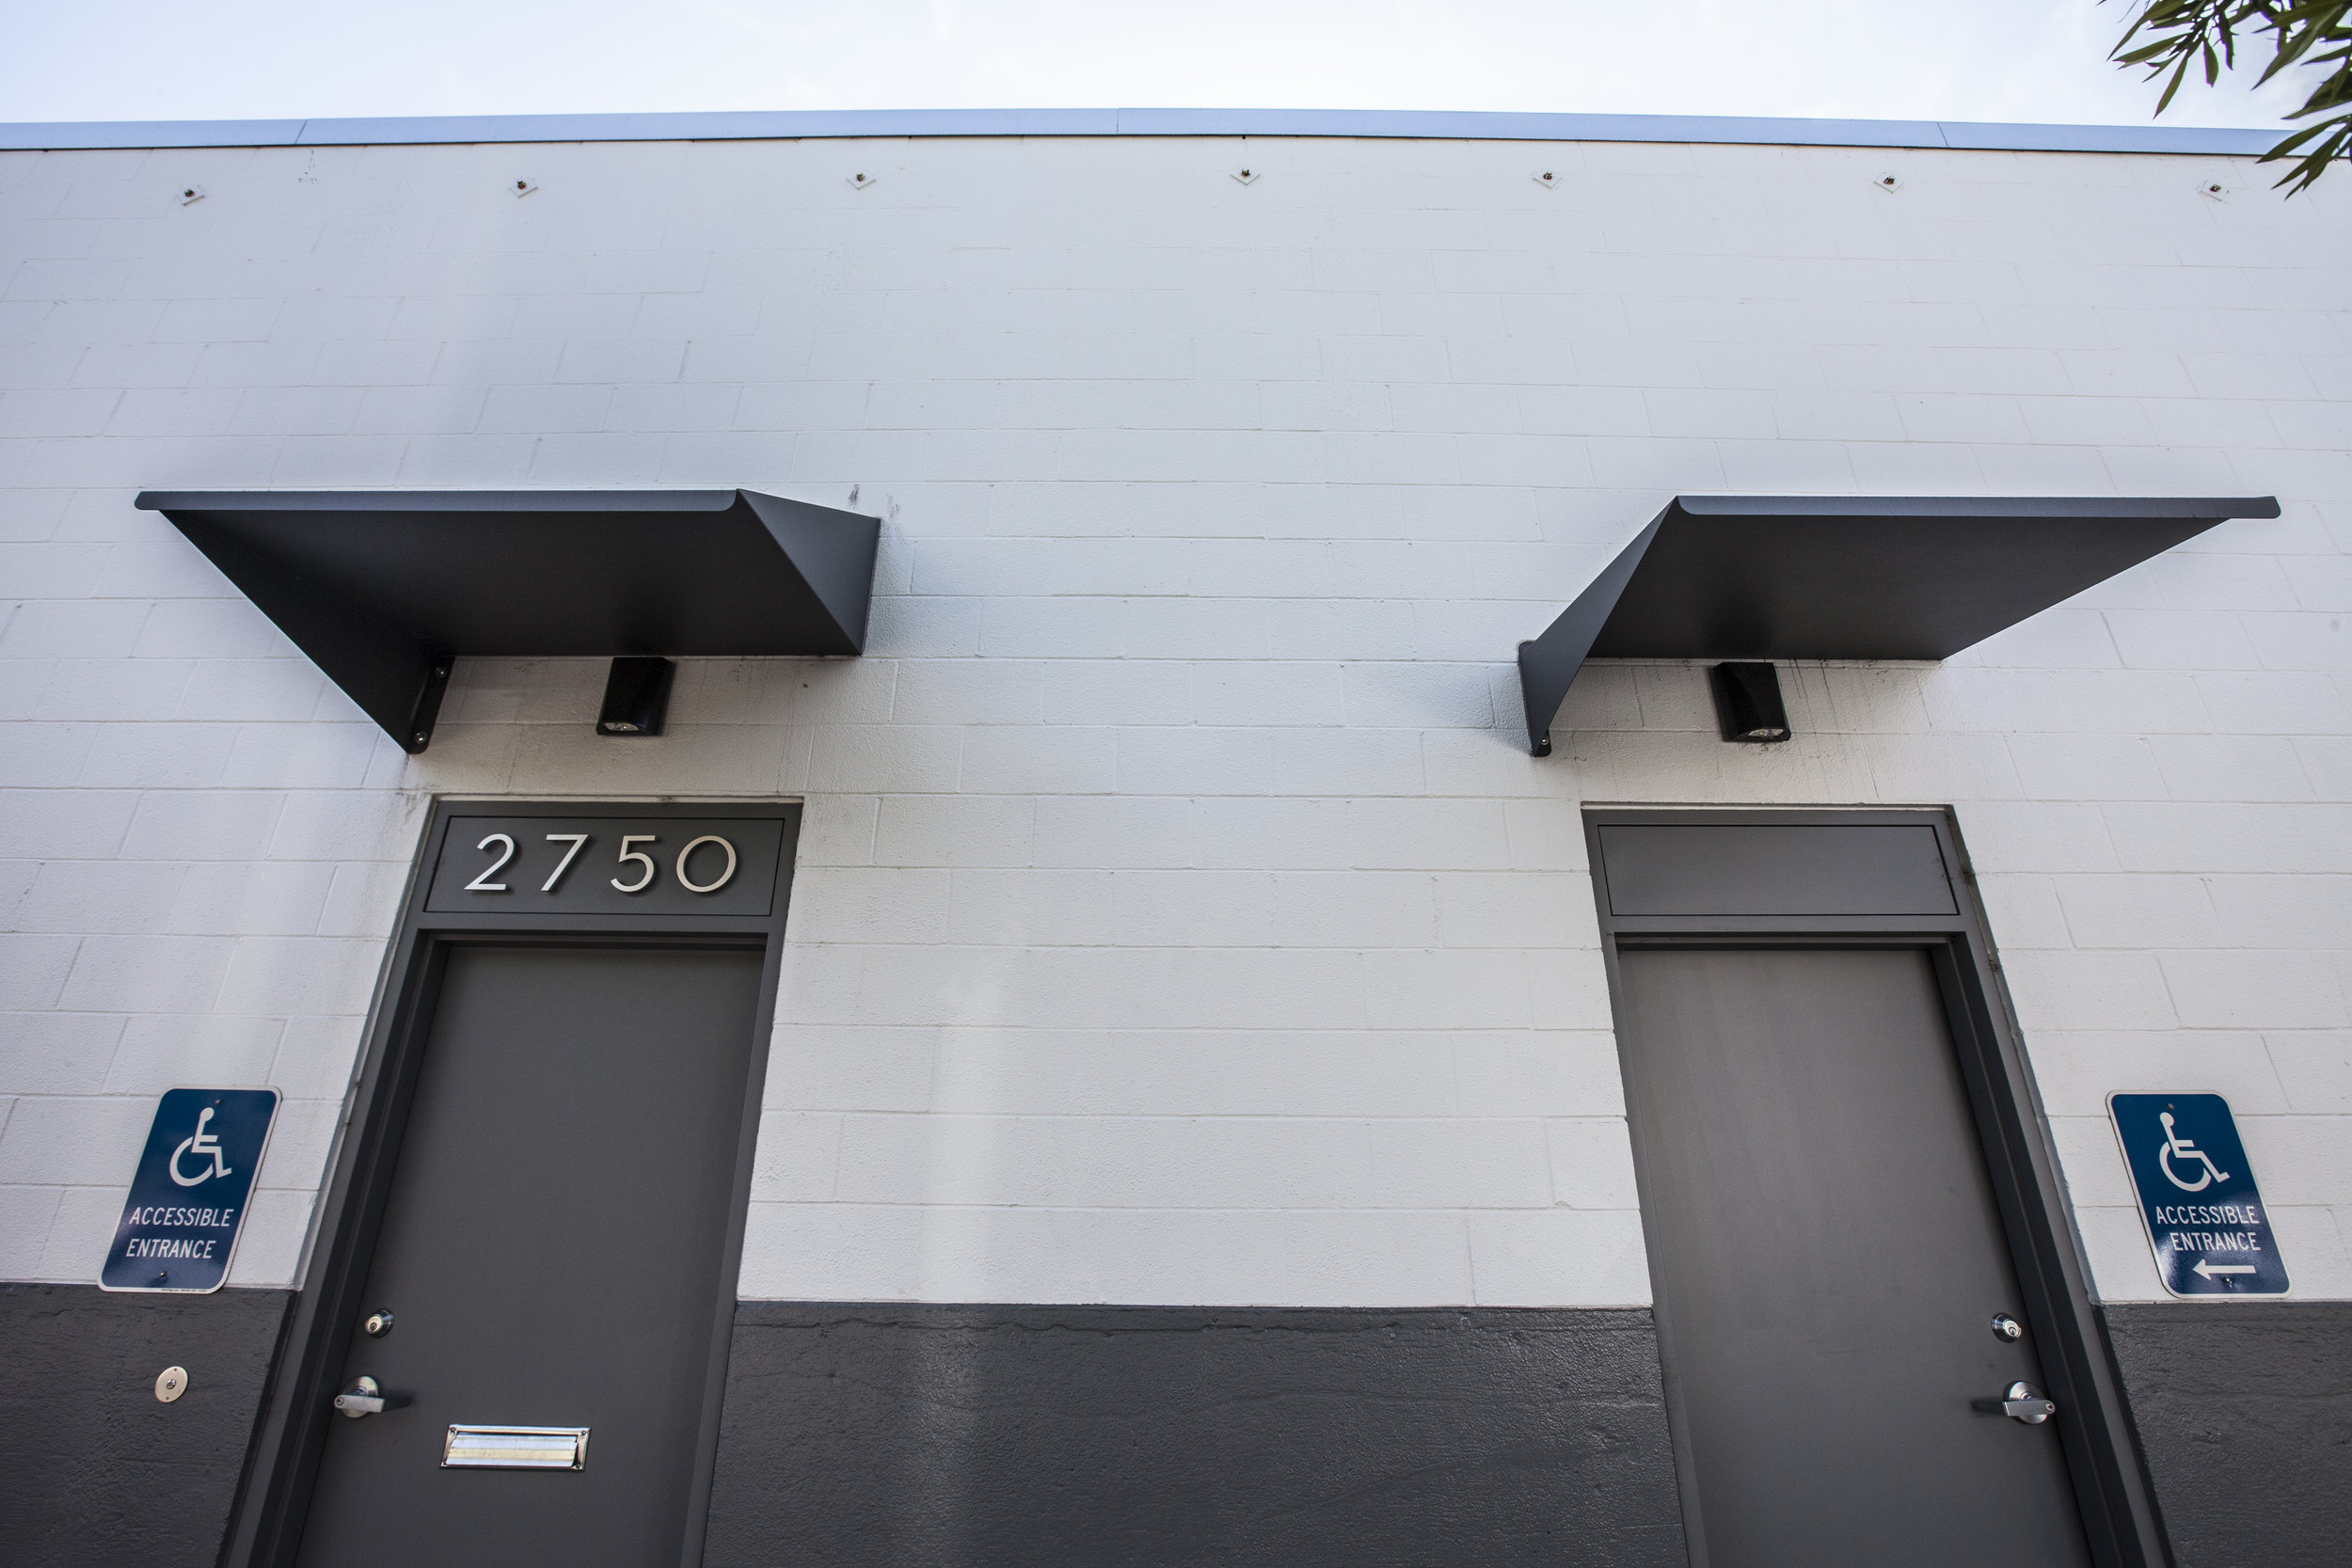 Required awnings and numbers were kept simple and descrete with a bit of fun, modern style.